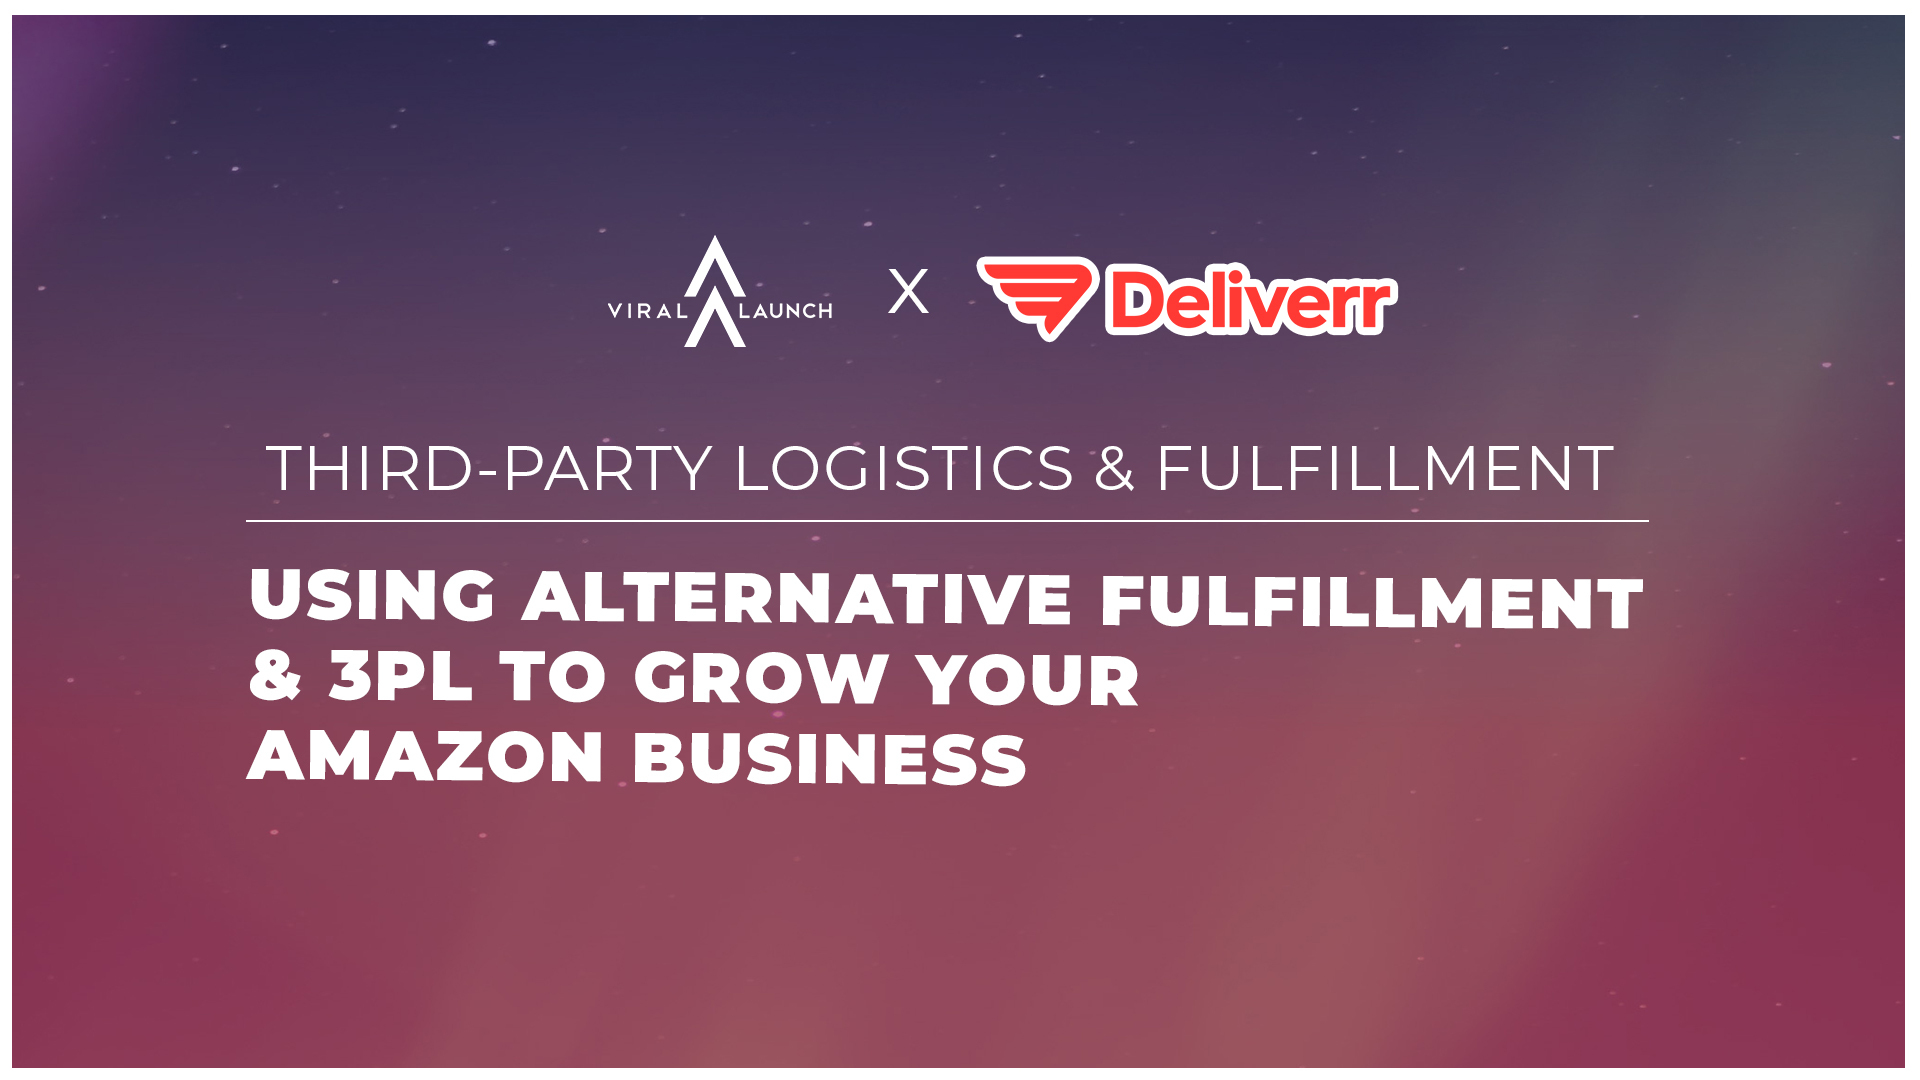 Deliverr x Viral Launch graphic on third-party fulfillment fbm